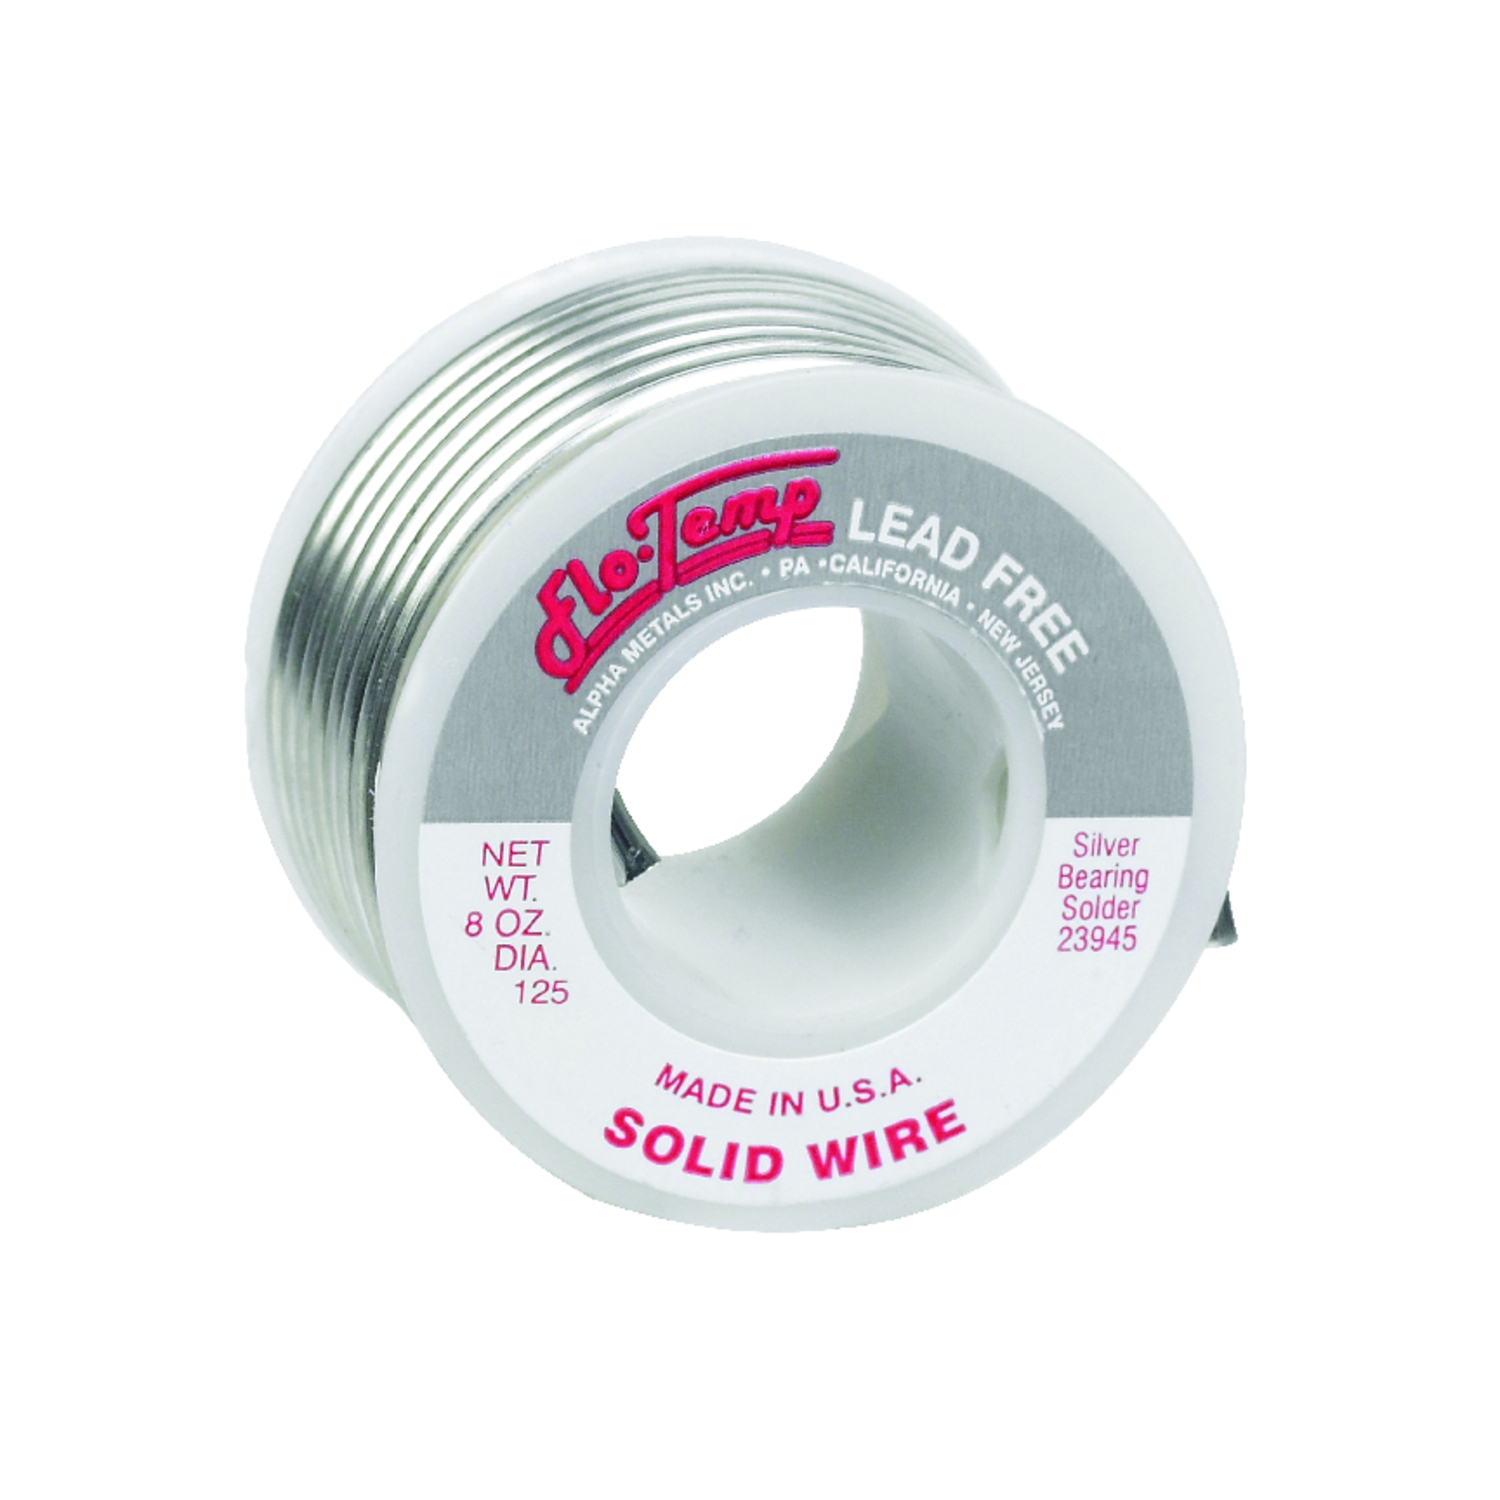 UPC 031427239452 - Alpha Fry(r) Flo-Temp Lead-Free Solid Wire Solder ...